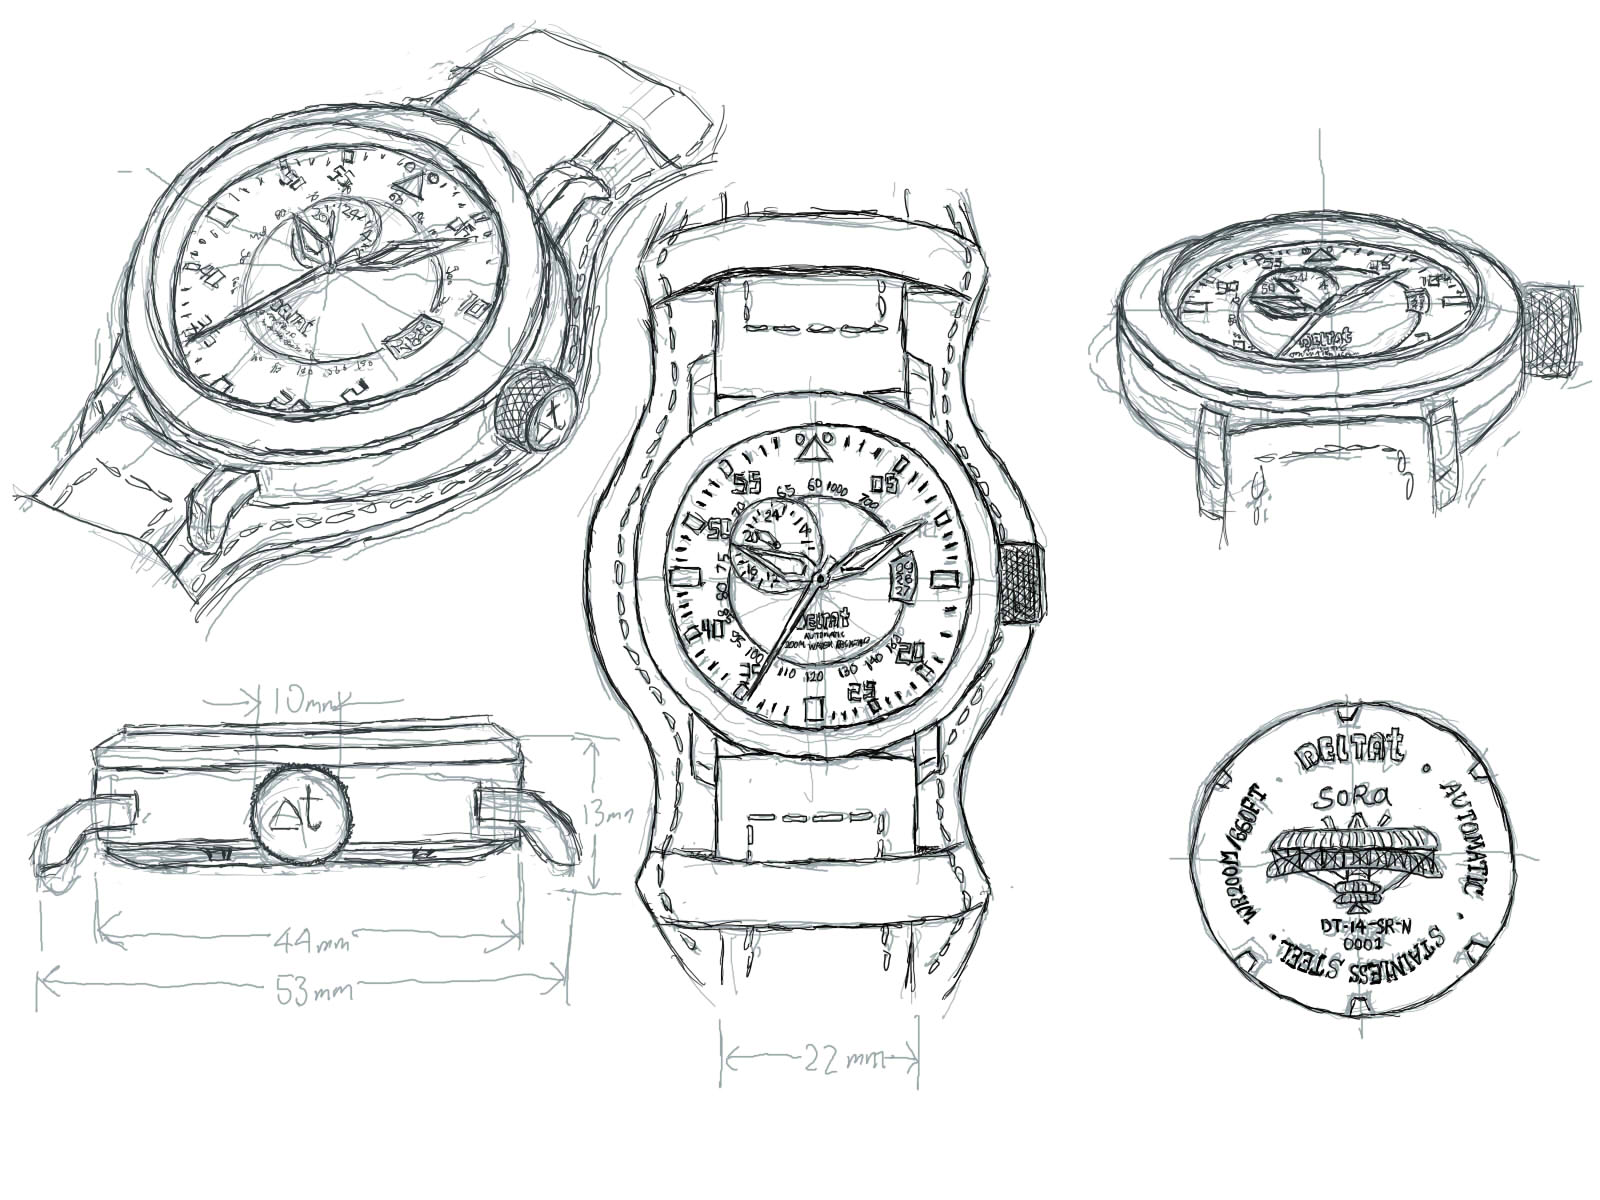 drawing miyota borealis diver store porto cascais cathedral lume automatic dial black date watches hands watch santo